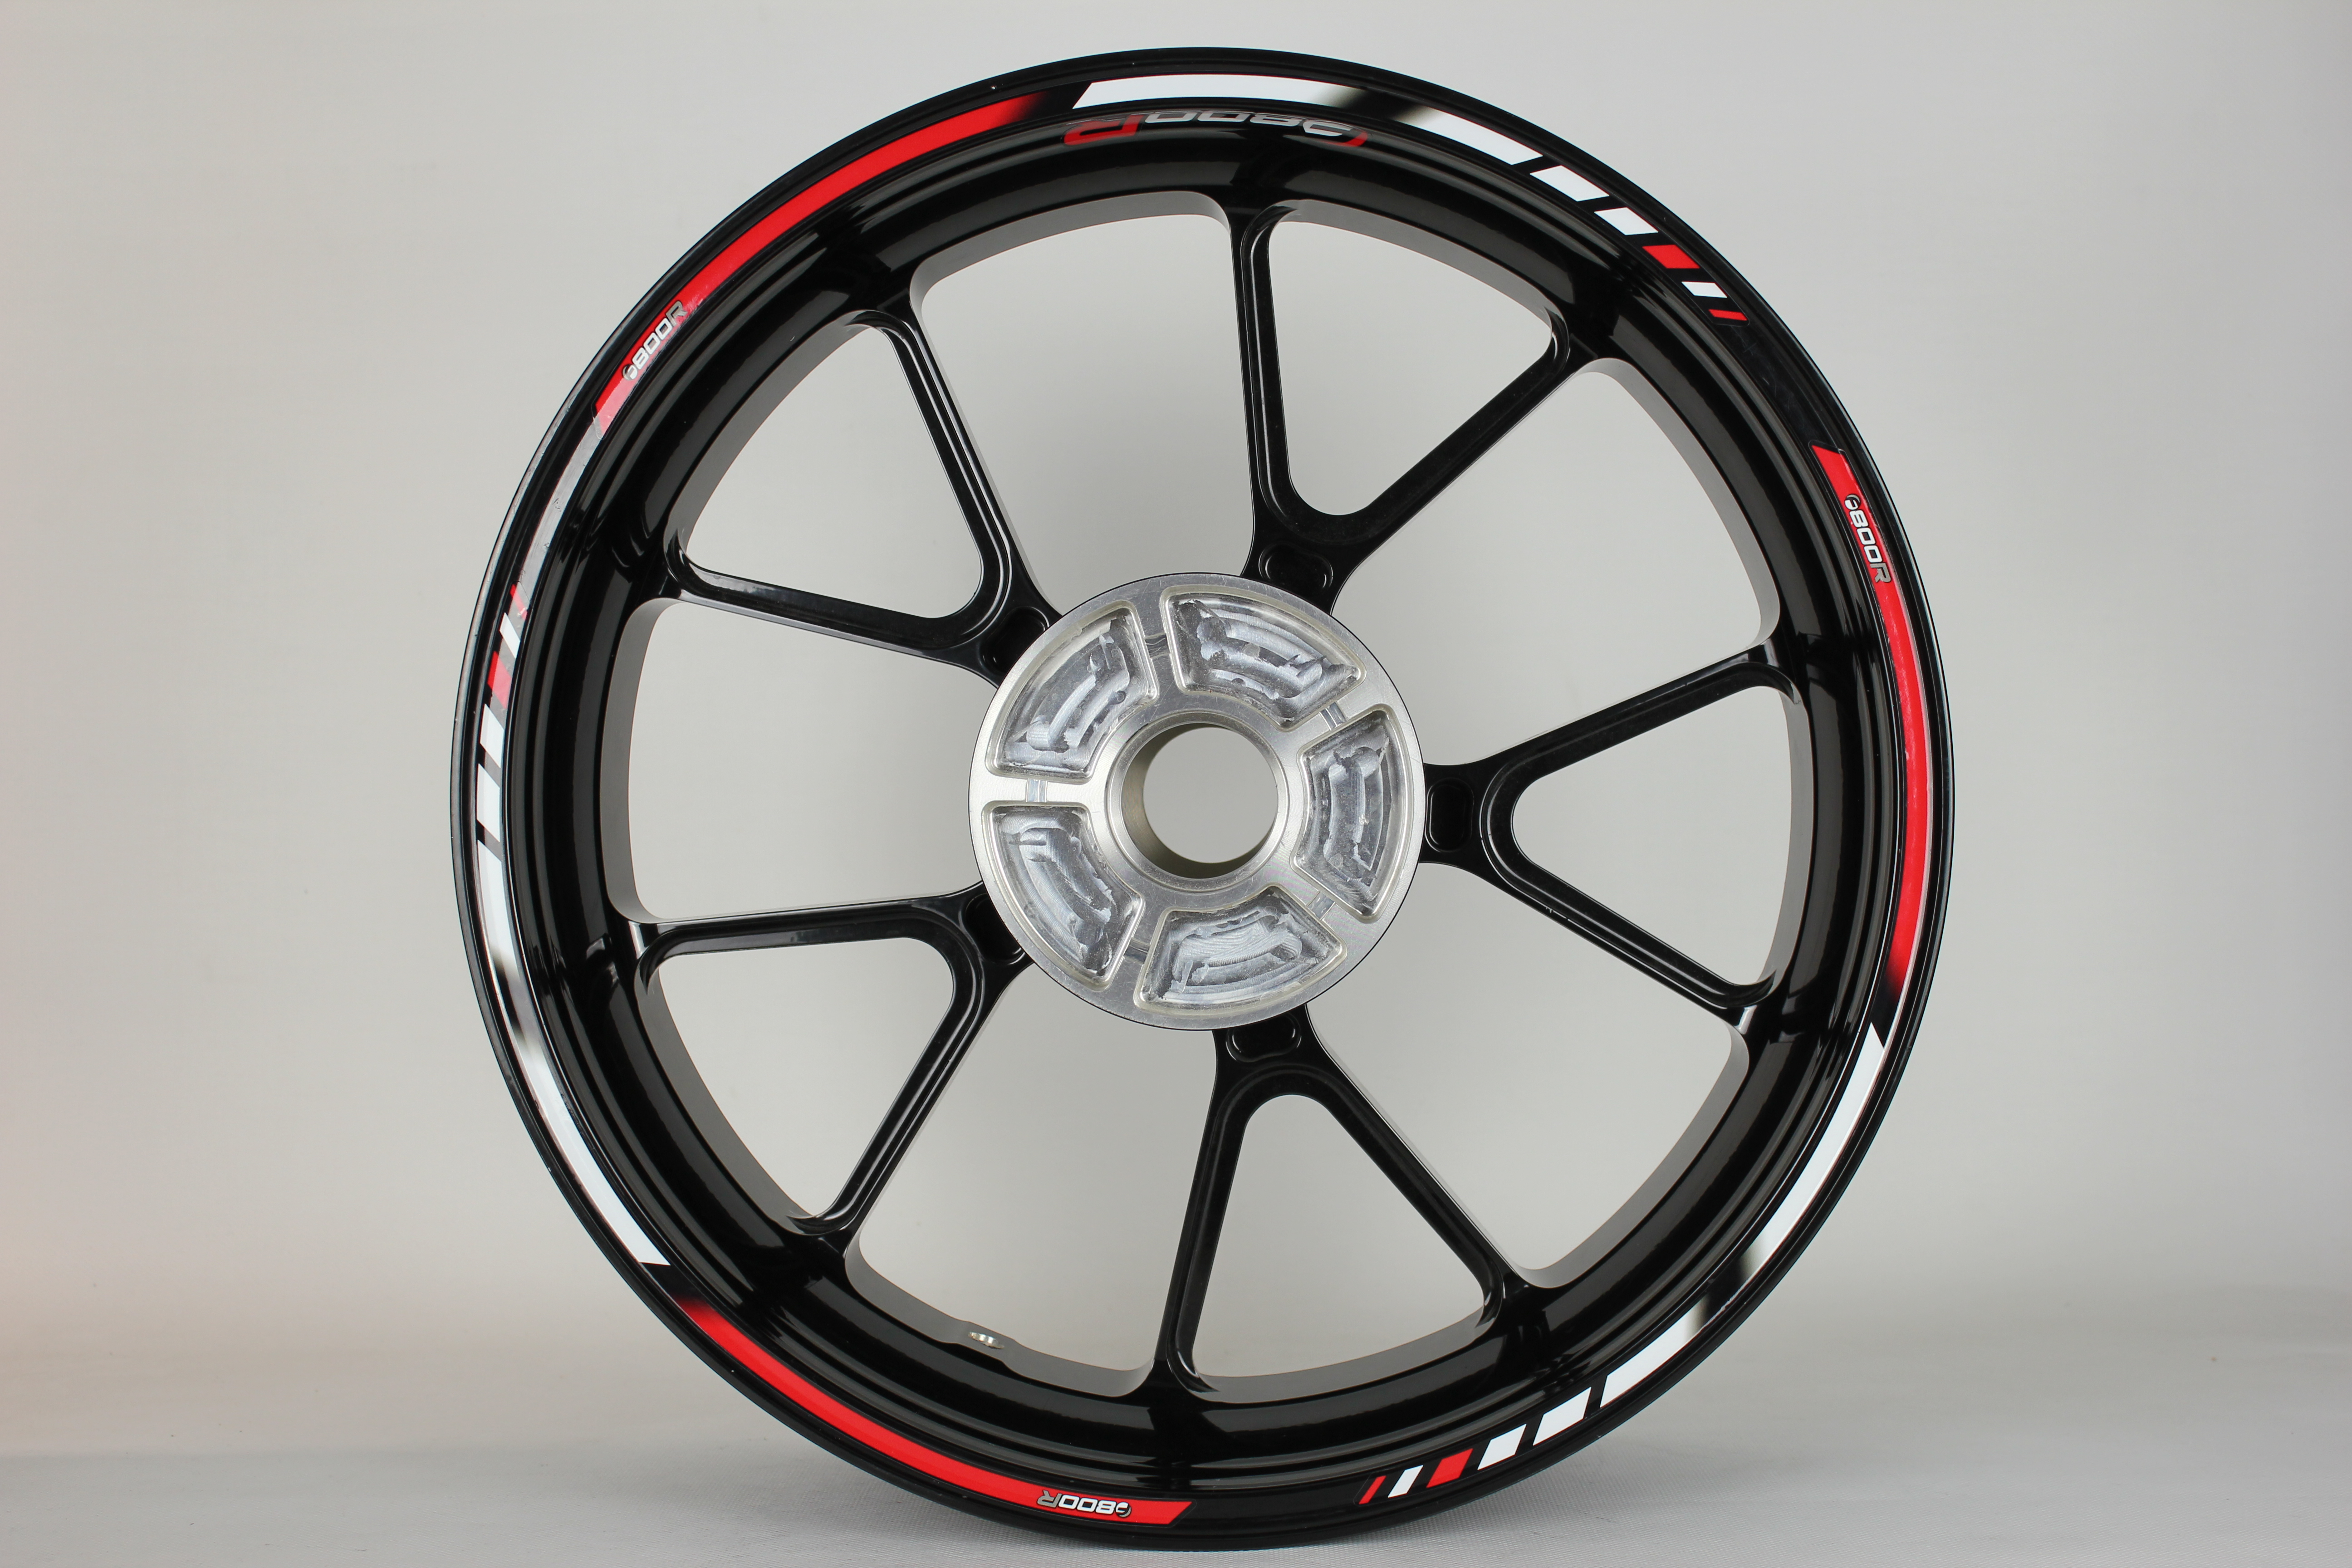 Rim Striping Specialgp Bmw F800rin The Colors Red And Whitewith A Set Of F800r Rim Logos Rim Striping Specialgp Bmw F800r Red